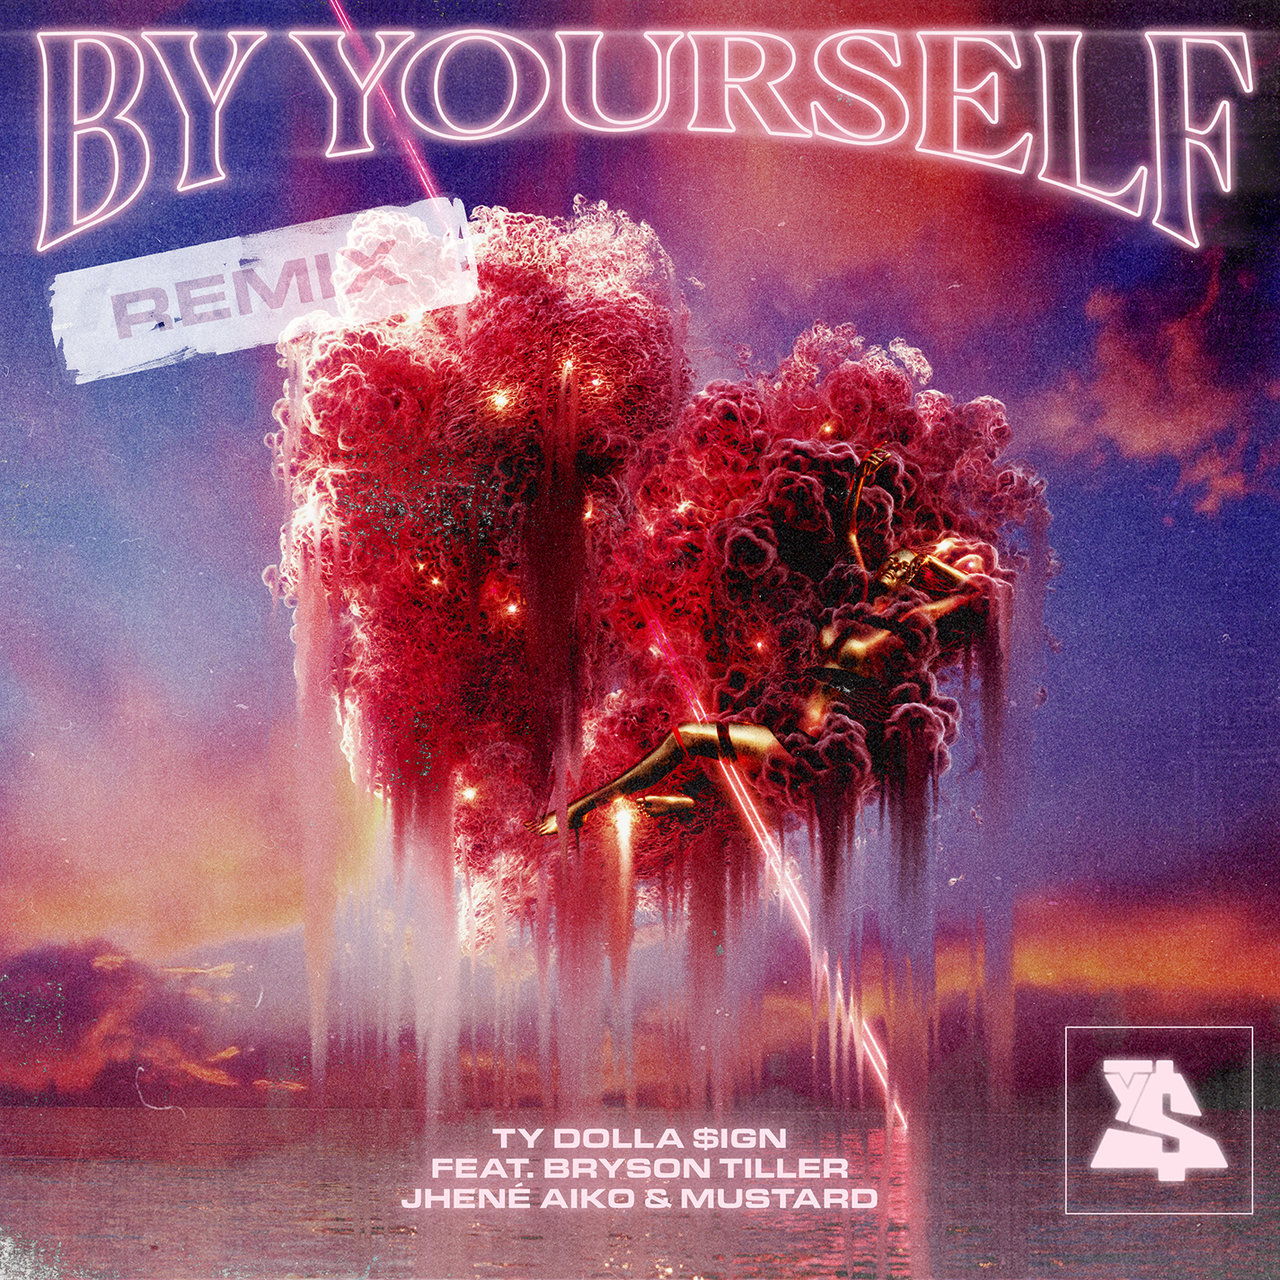 Ty Dolla Sign's 'By Yourself (Remix)' artwork